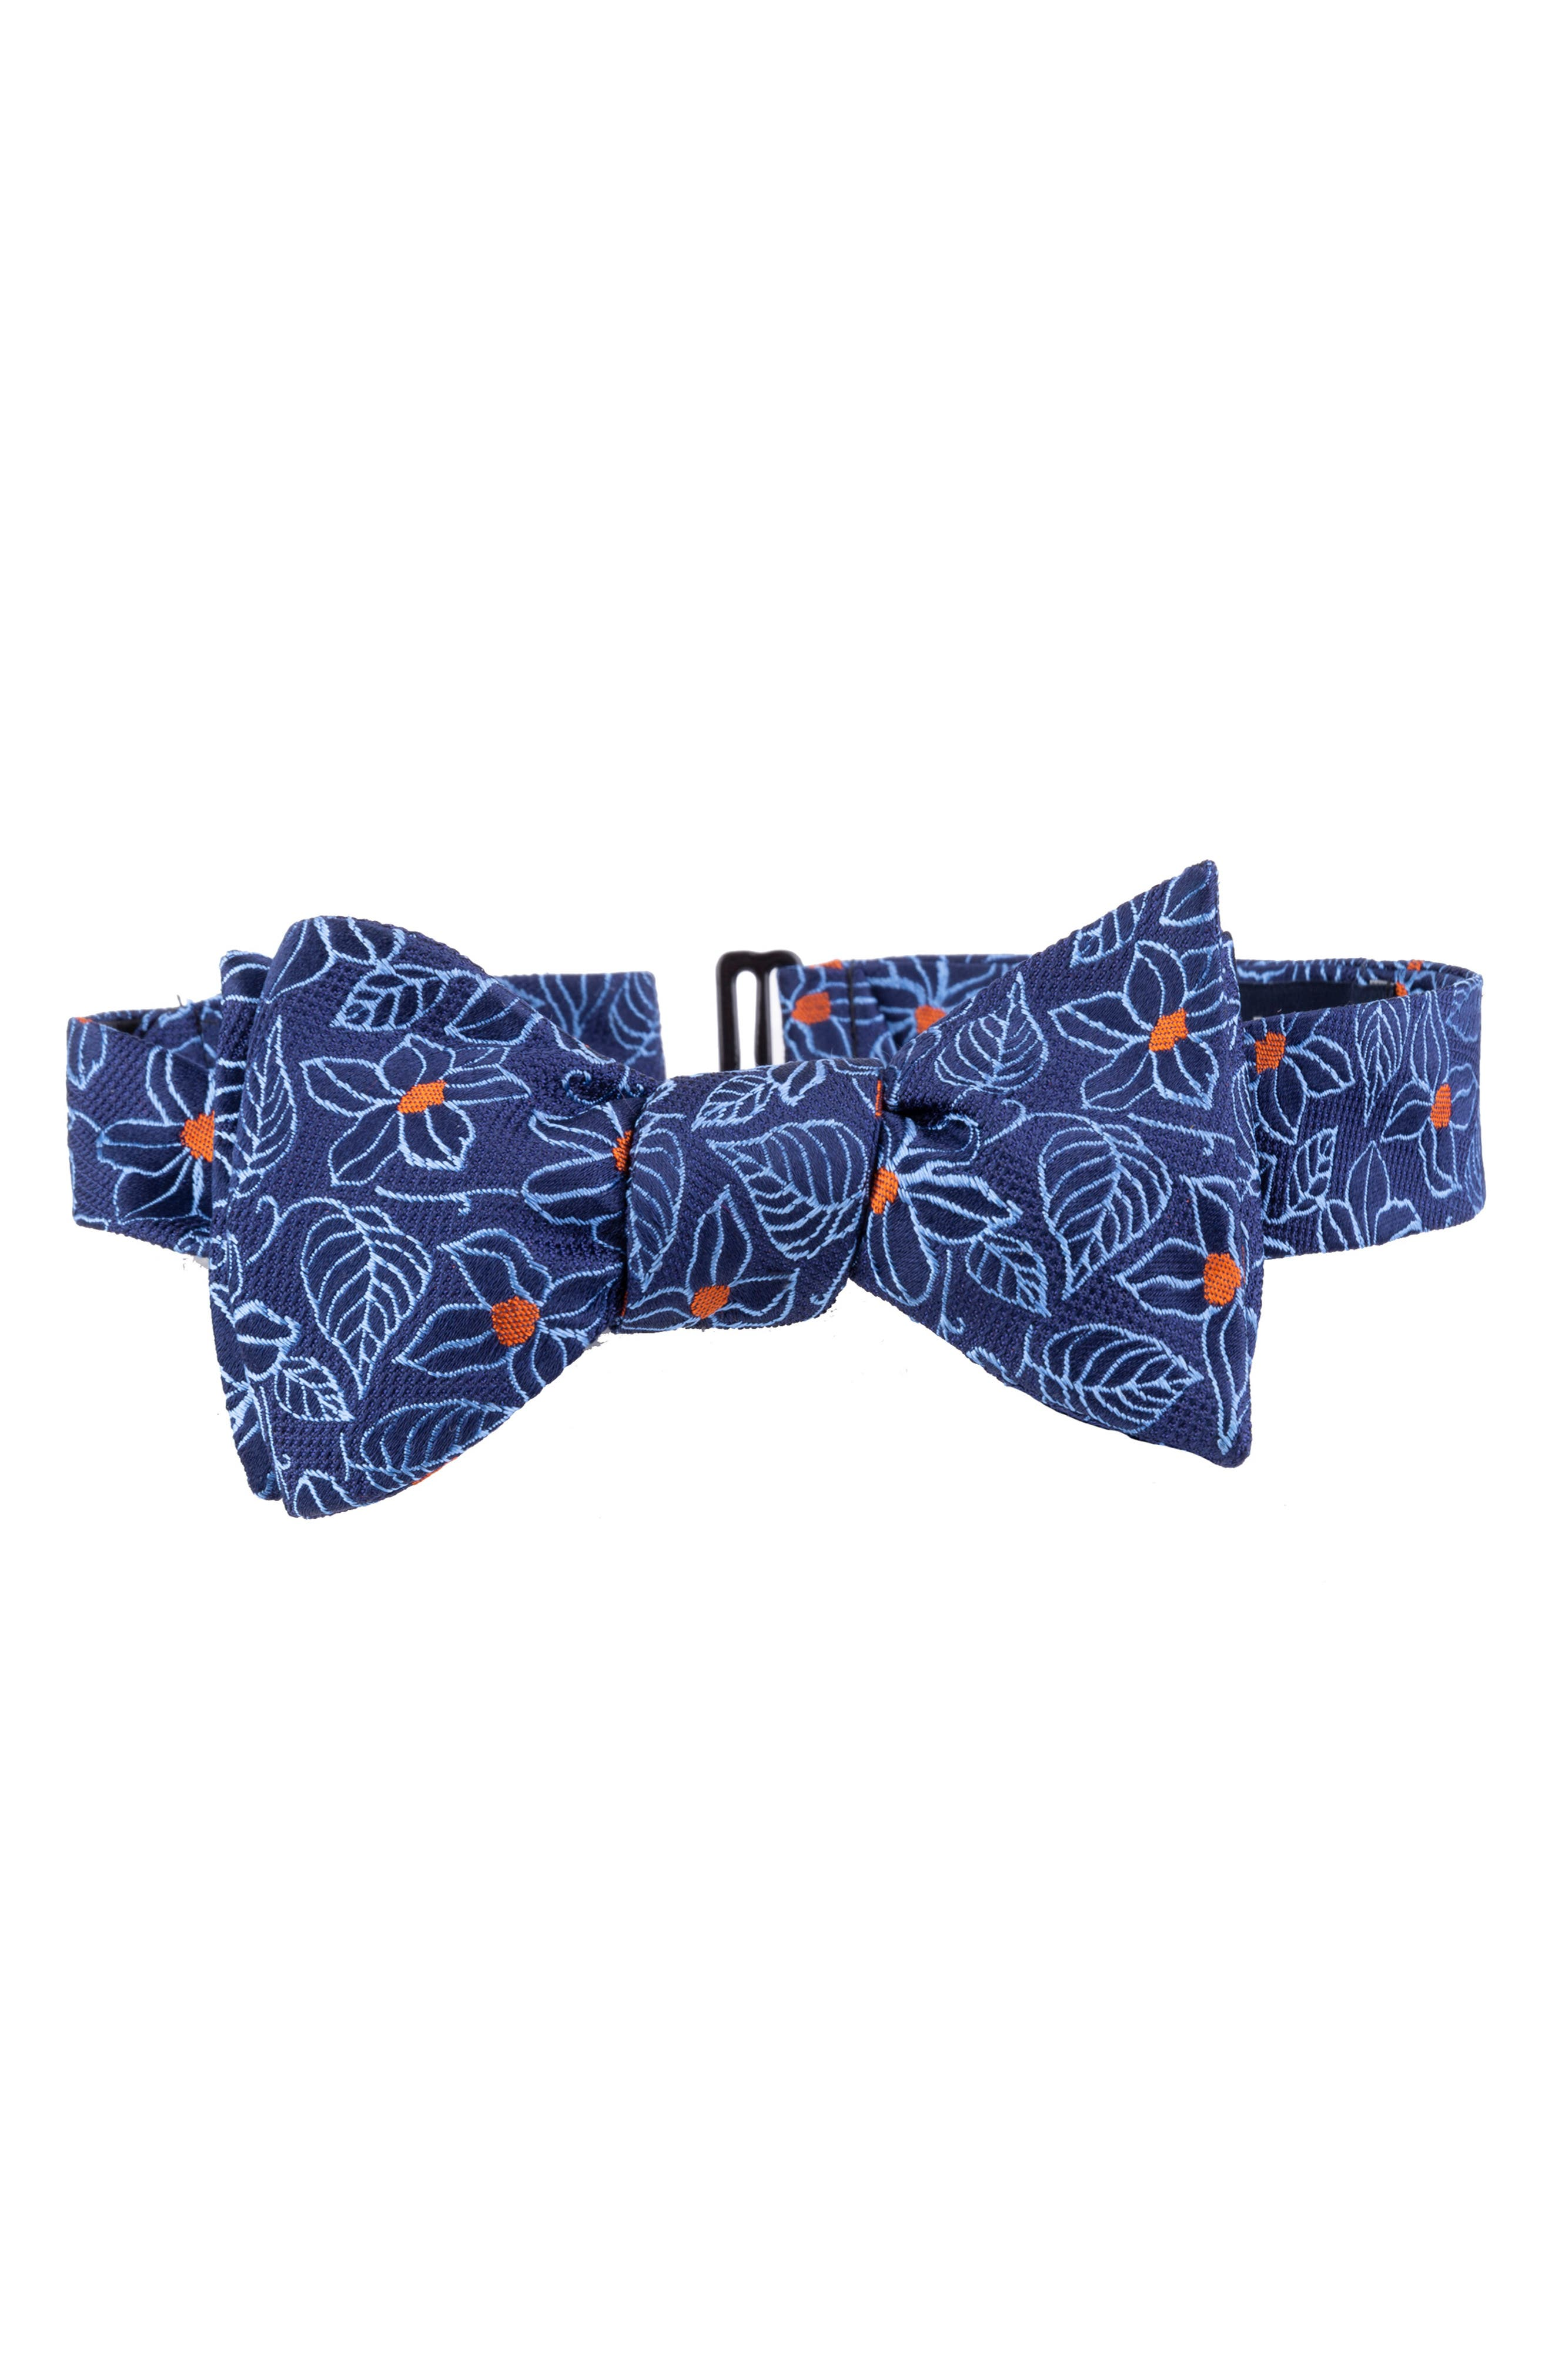 Edwardian Men's Fashion & Clothing Mens Ted Baker London Flower Silk Bow Tie $59.50 AT vintagedancer.com